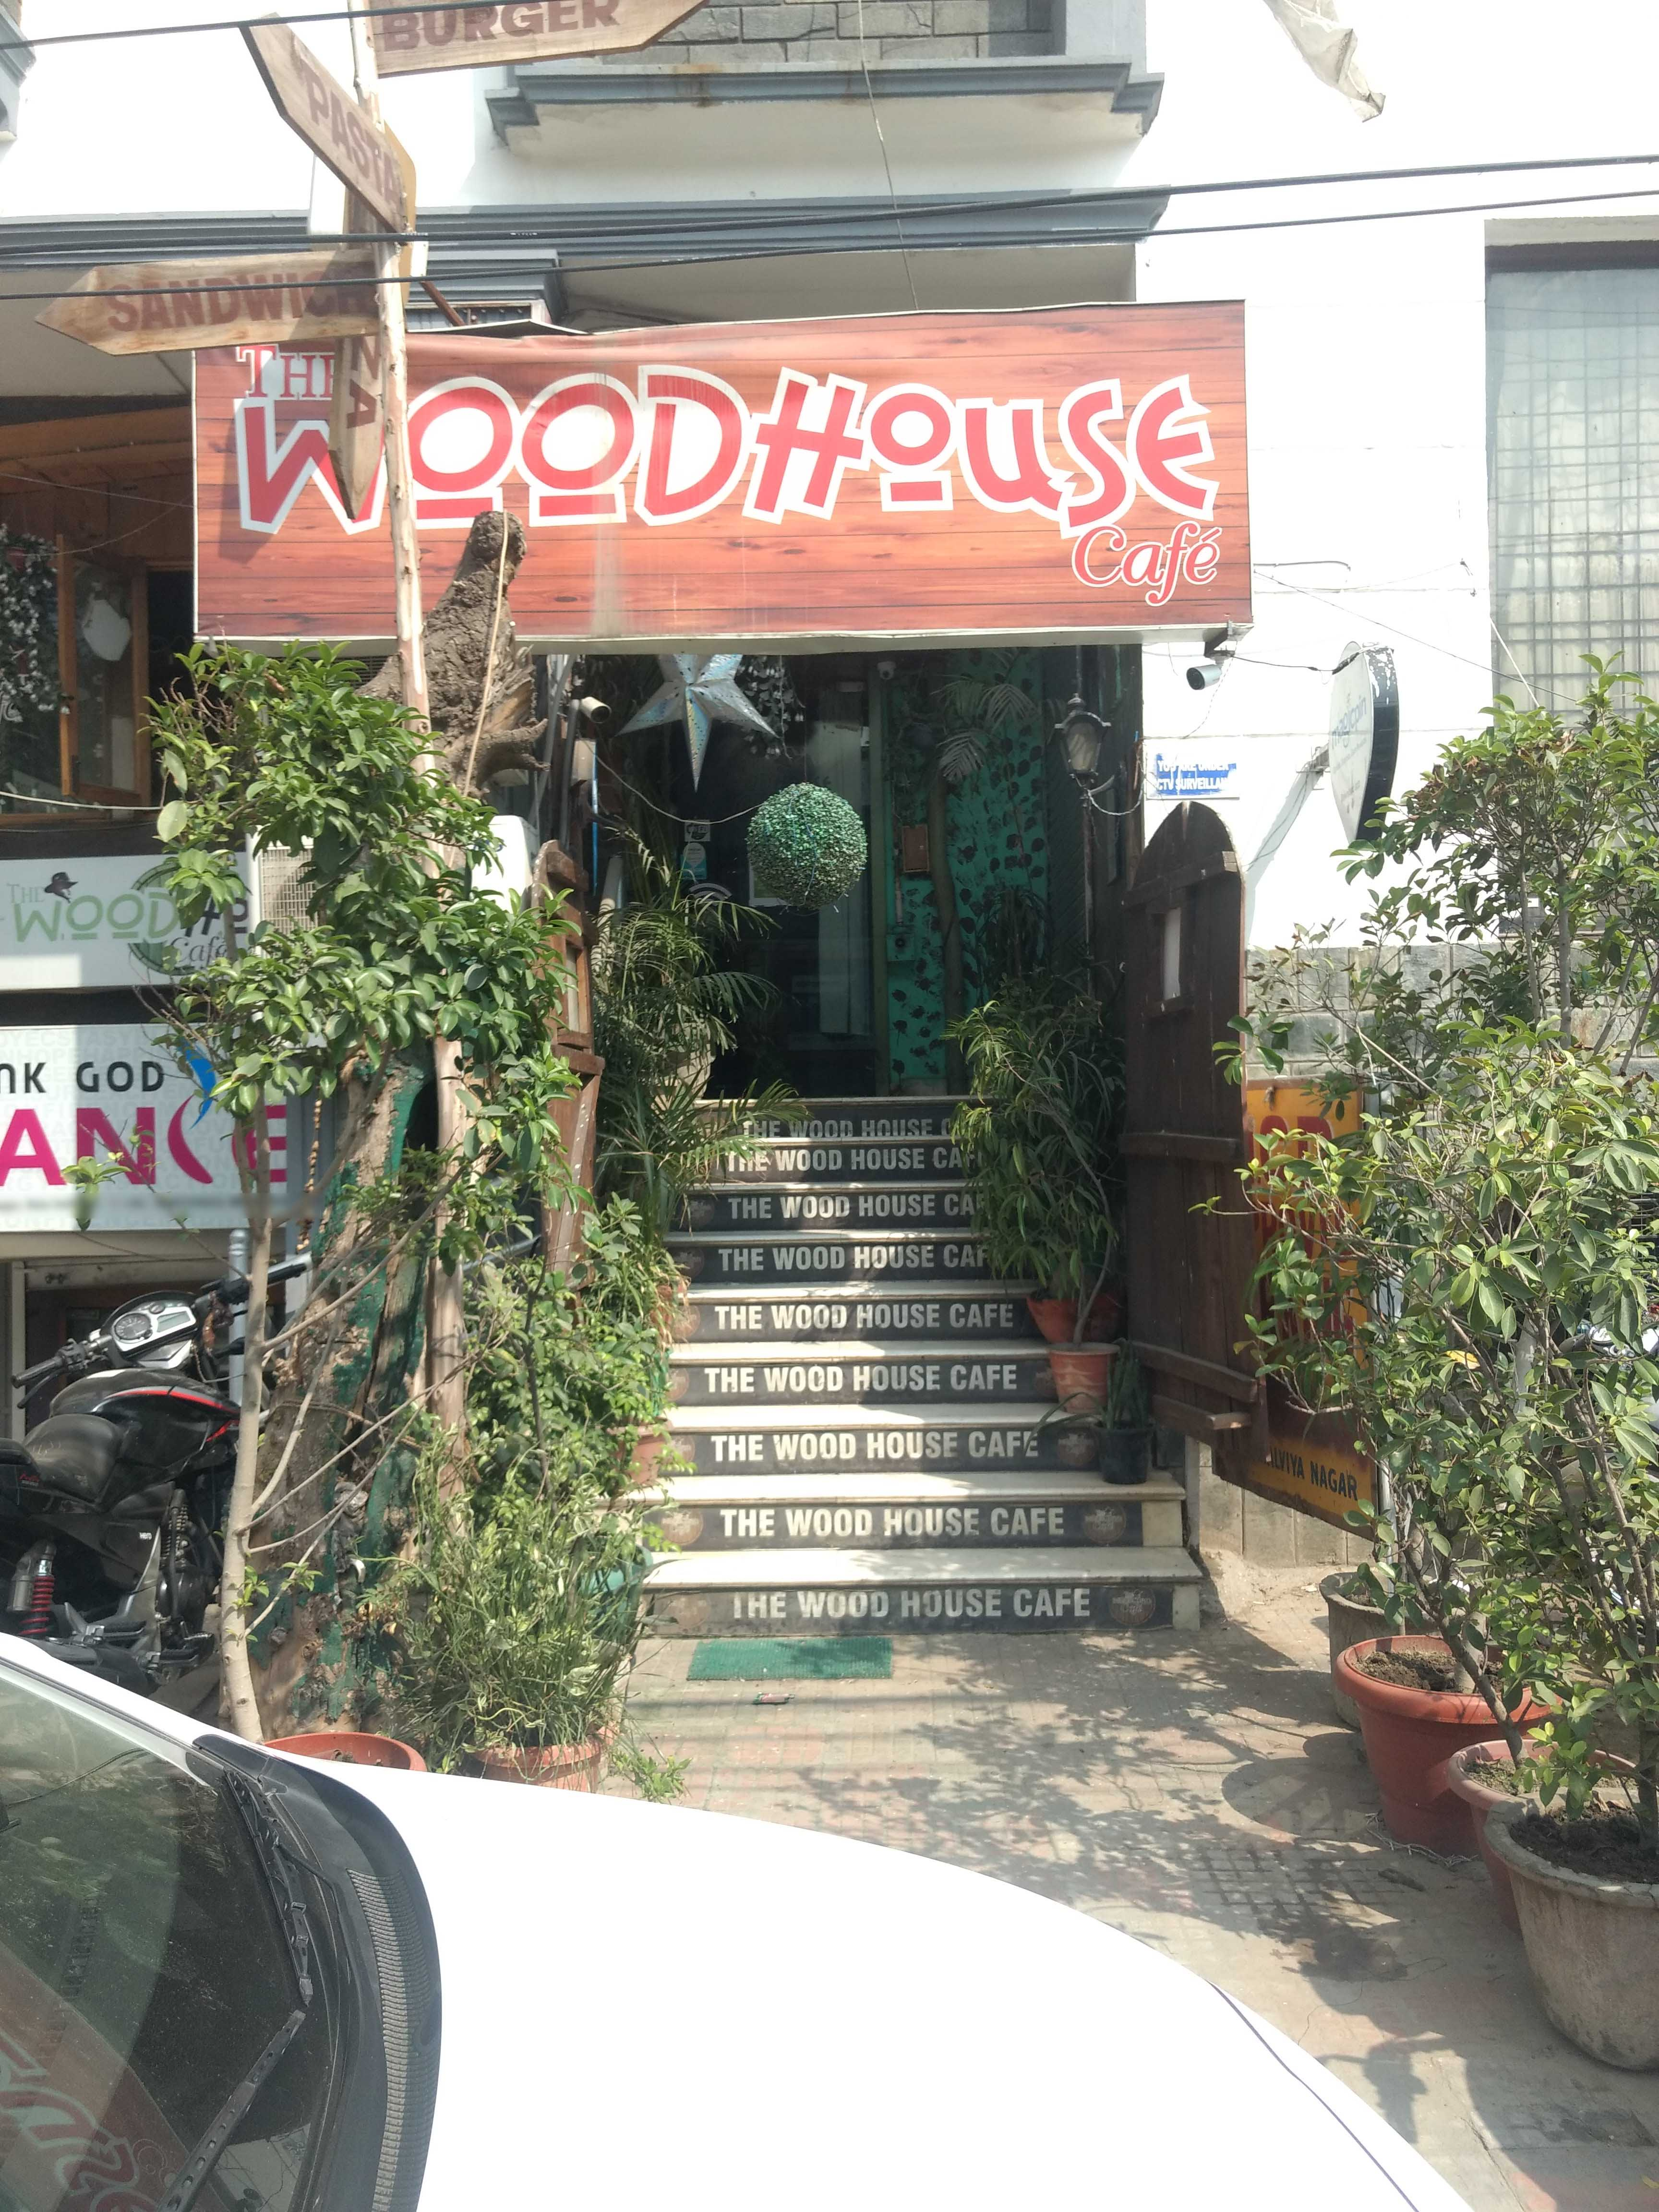 The woodhouse cafe